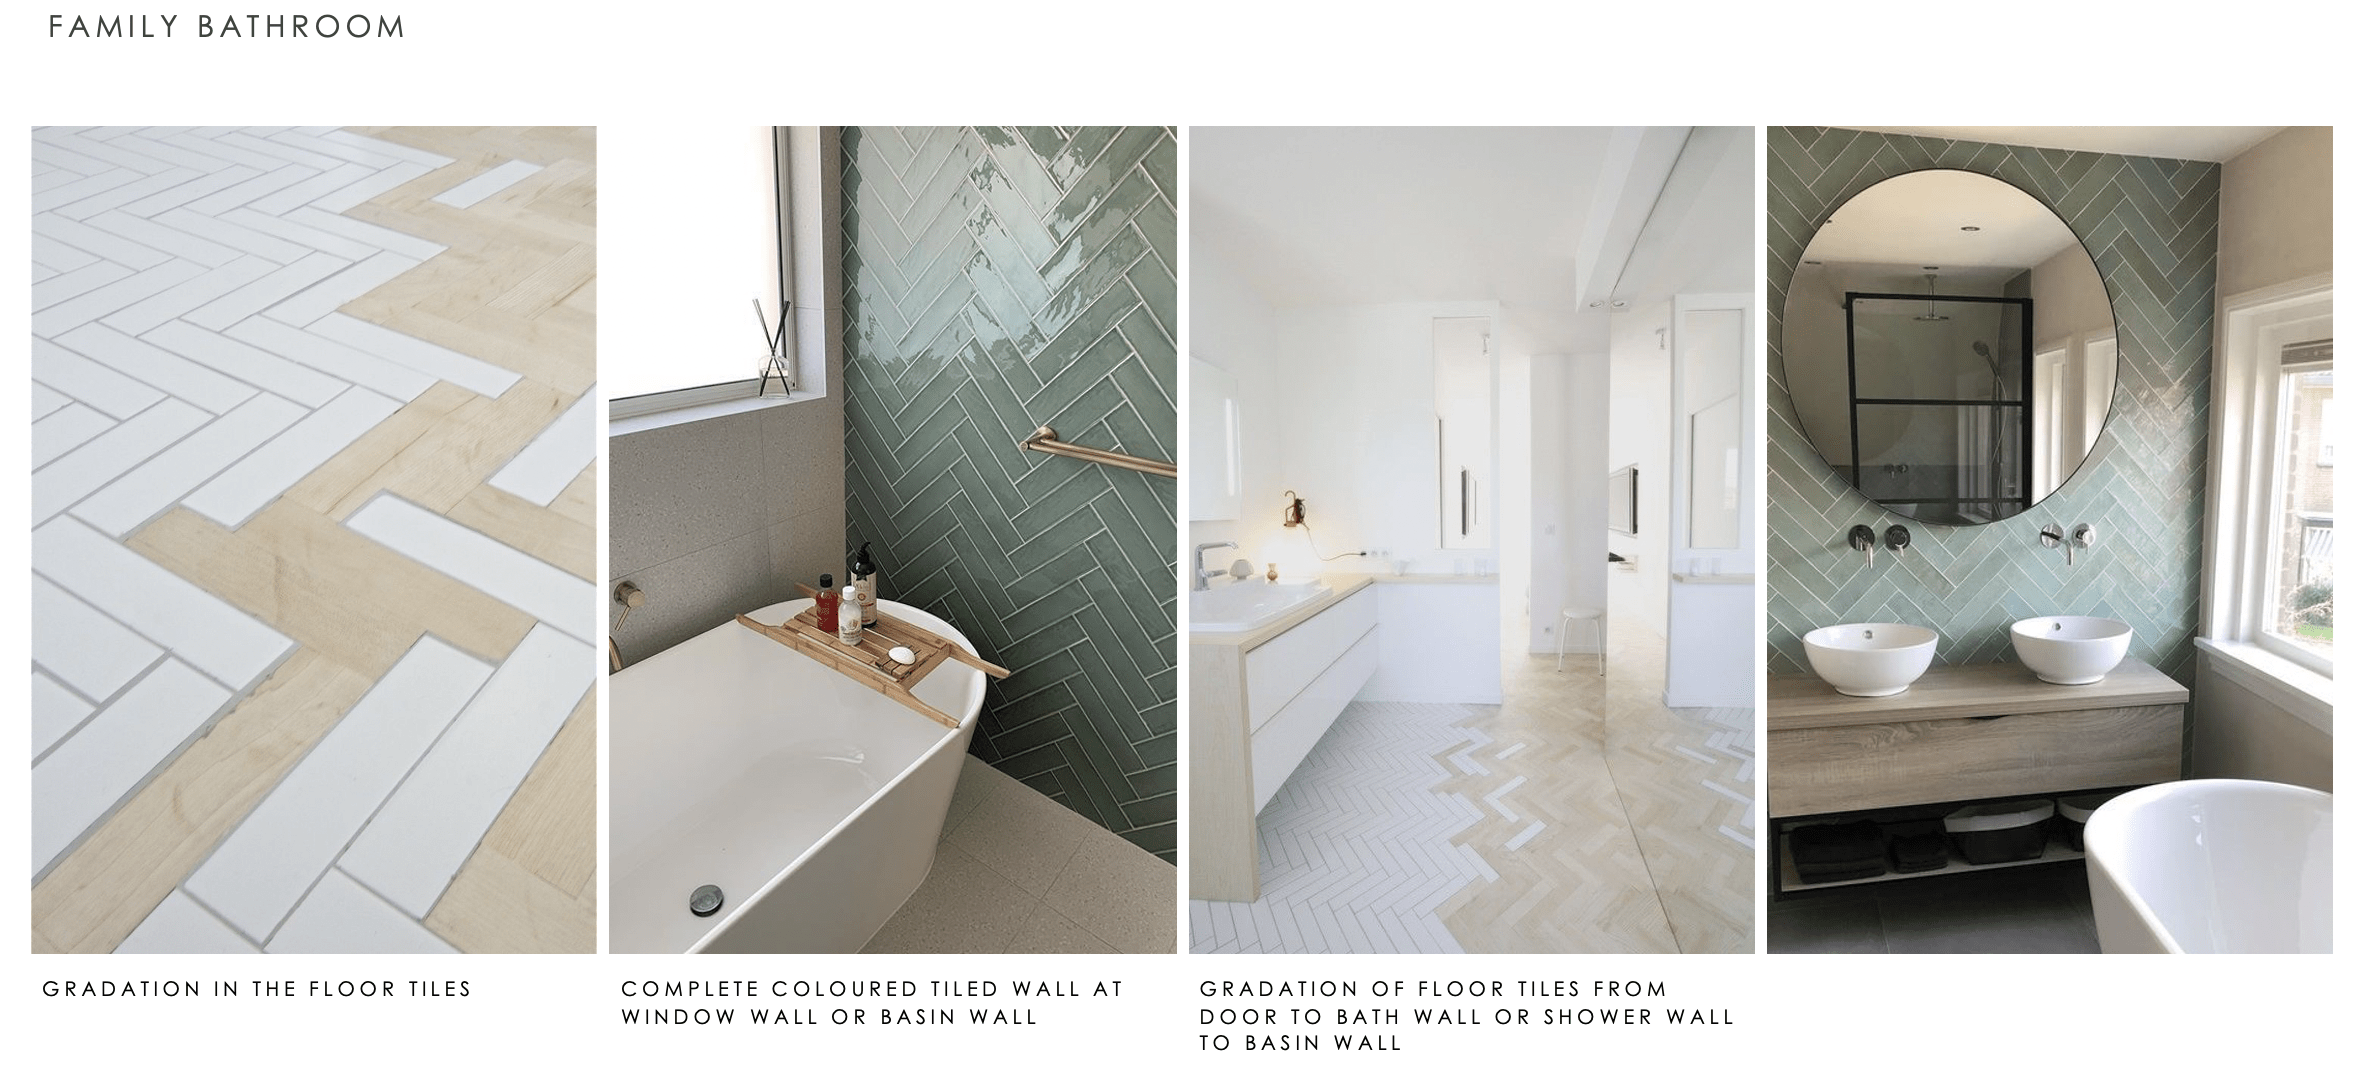 family bathroom concept images